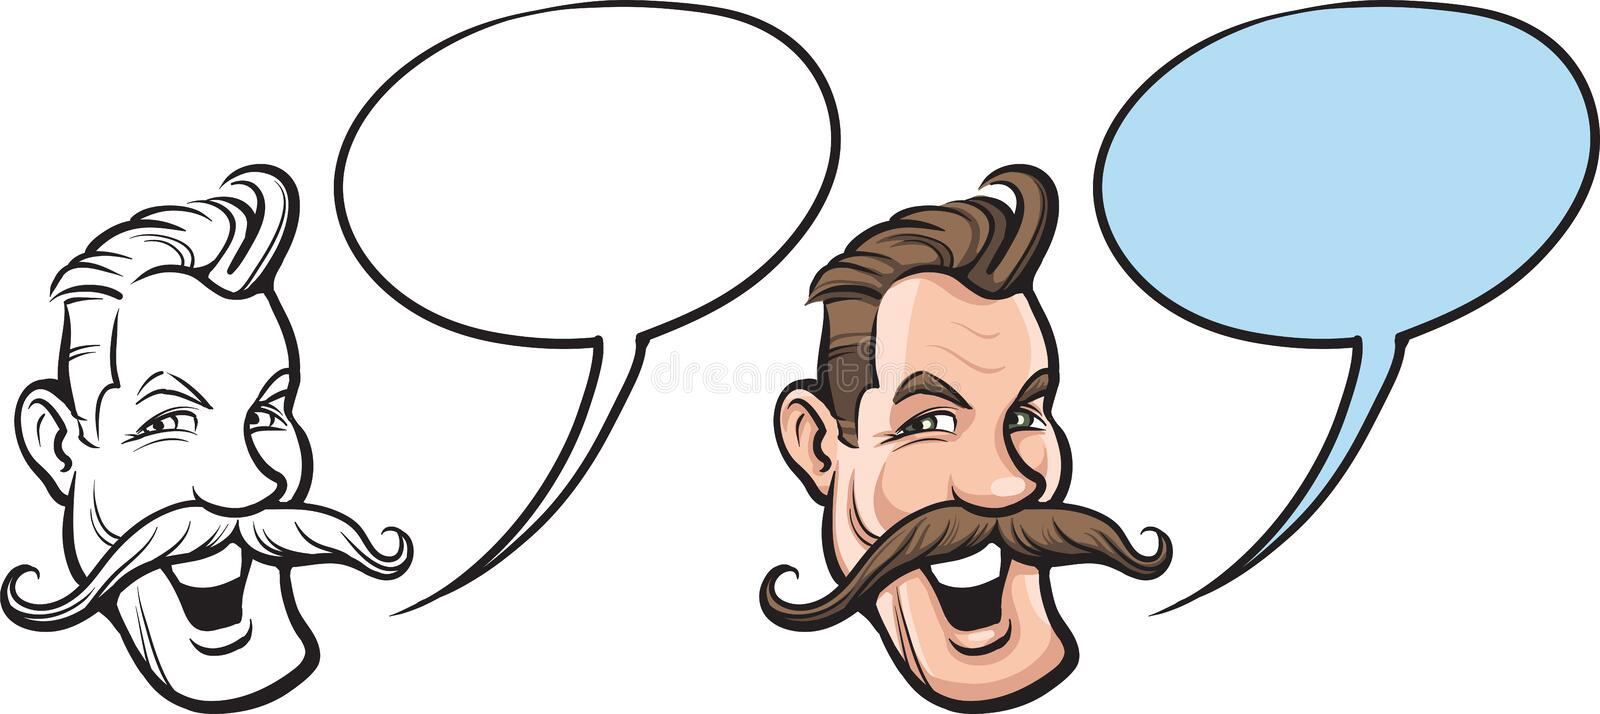 Cartoon smiling man with big mustaches face stock illustration